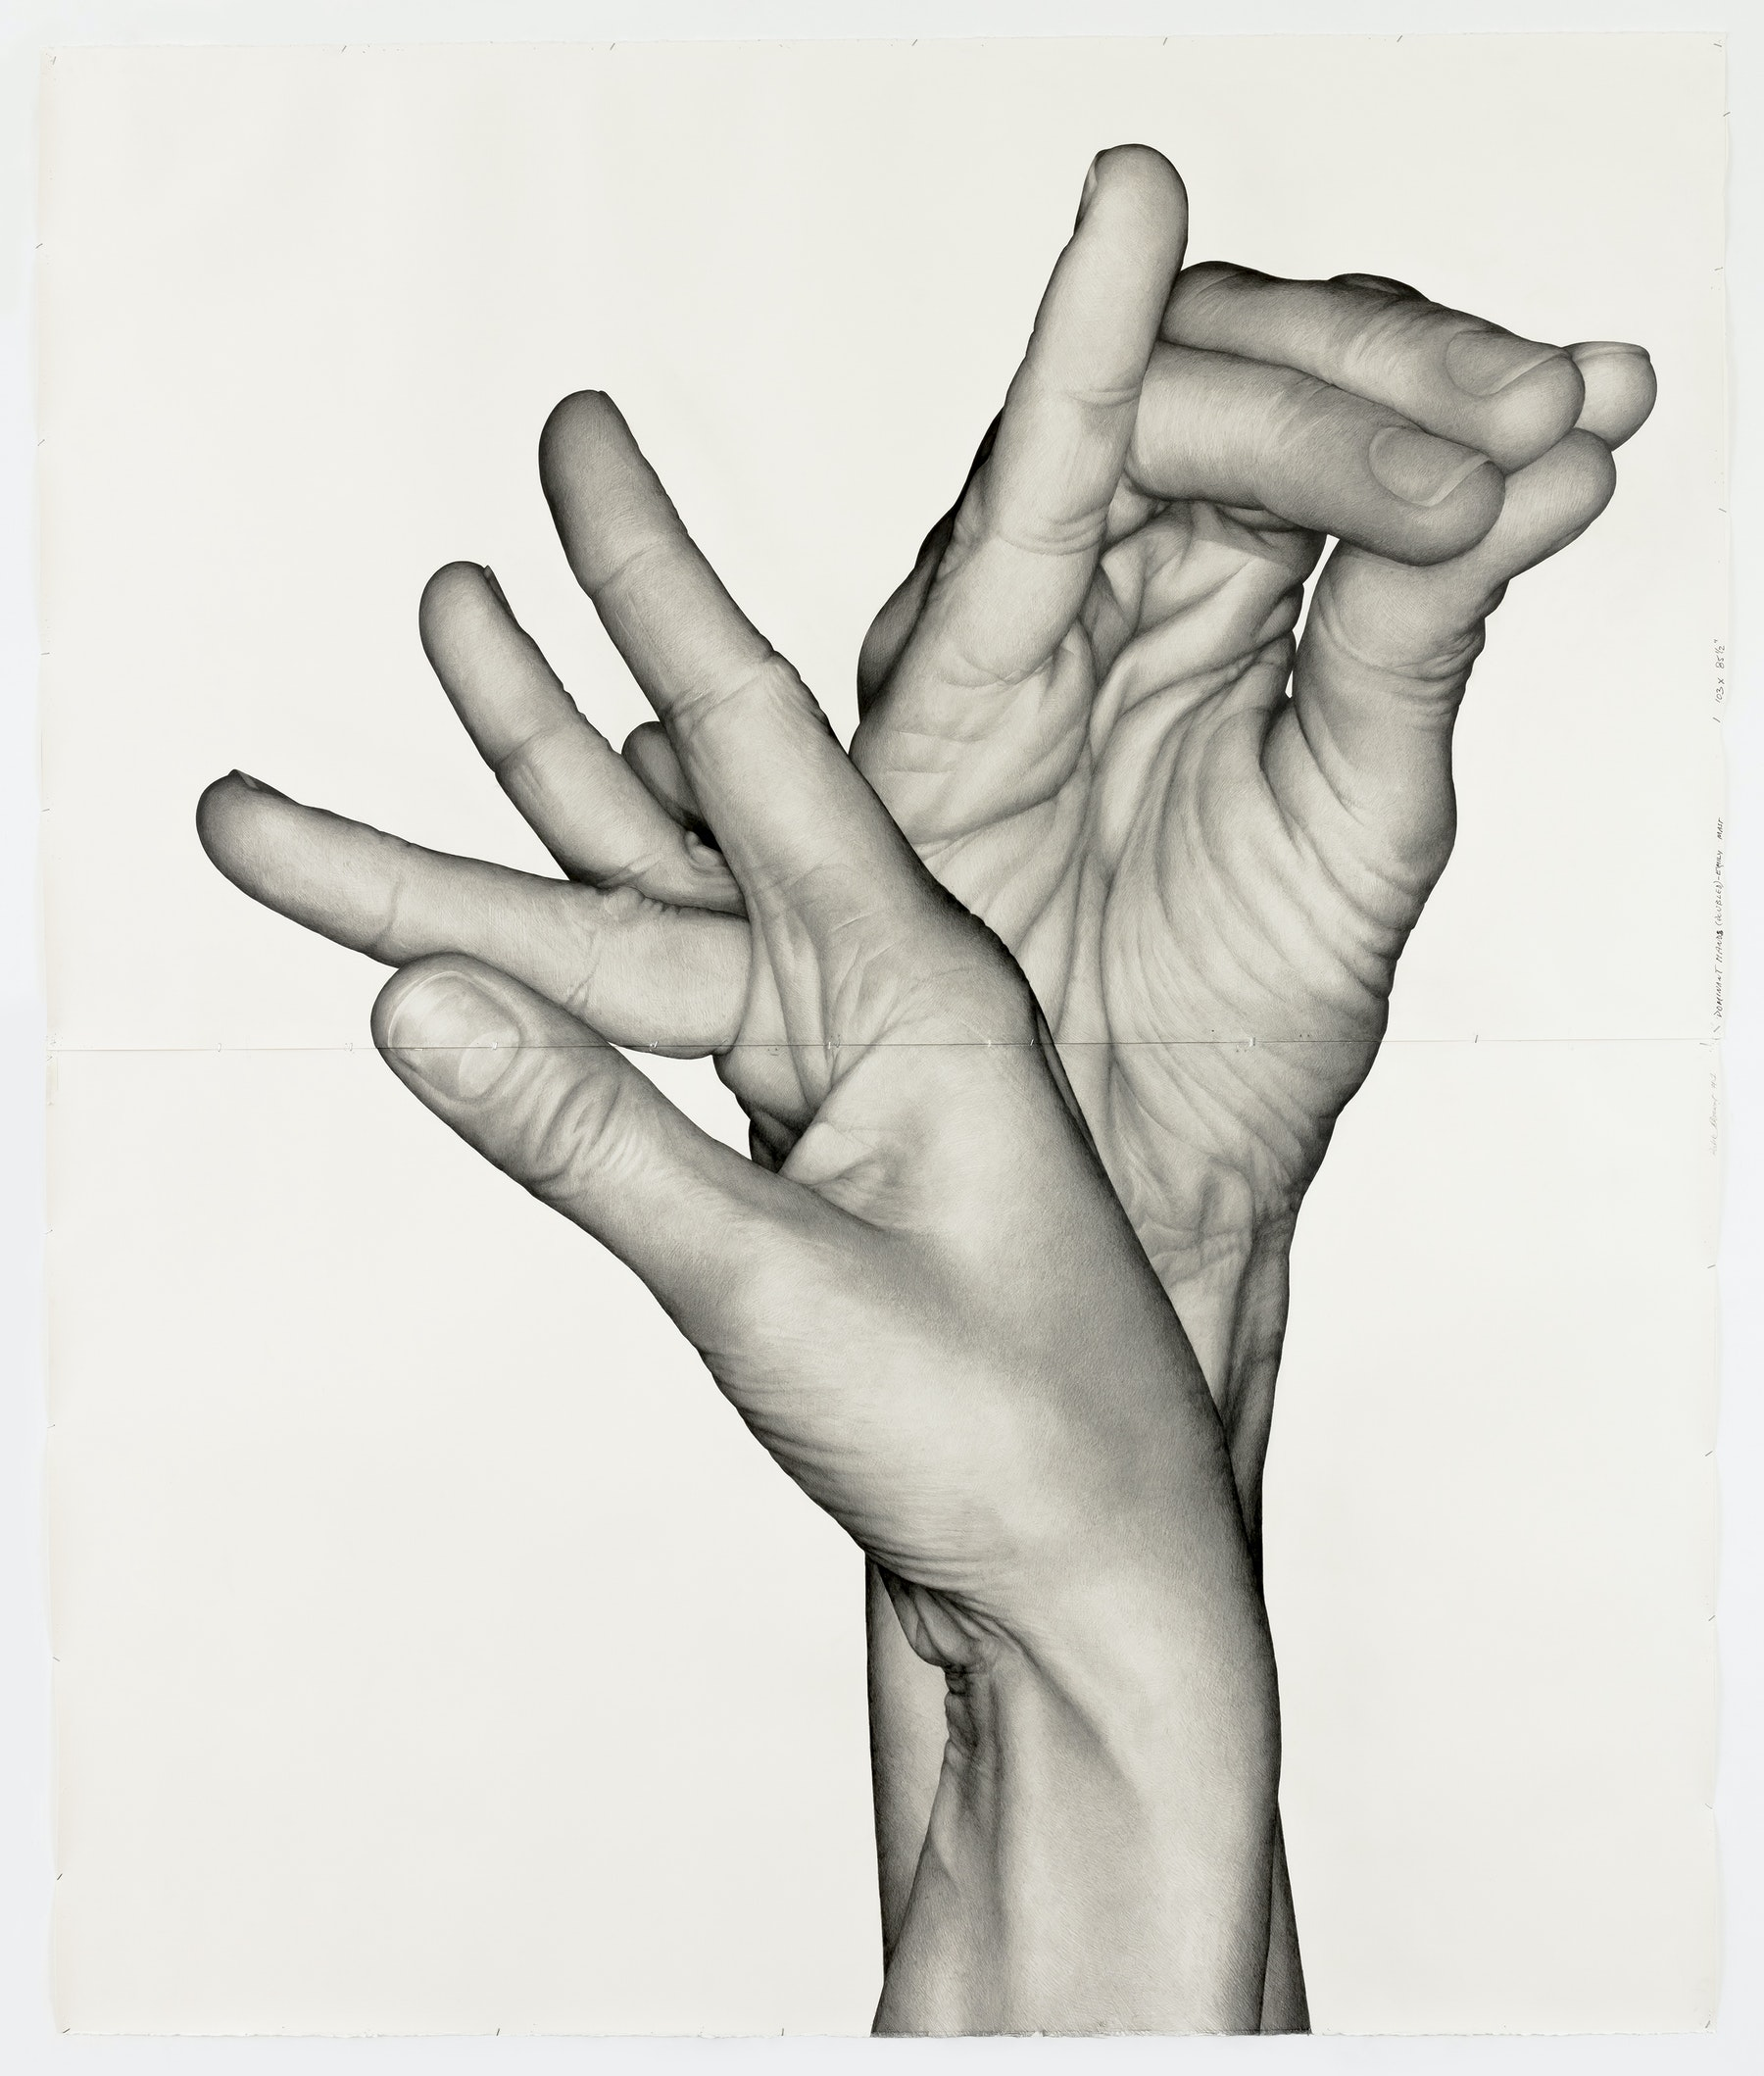 "Karl Haendel ""Double Dominant 1 (Emily Mast),"" 2018 Pencil on paper 103 x 85"" [HxW] (261.62 x 215.9 cm) Inventory #HAE549 Courtesy of the artist and Vielmetter Los Angeles Photo credit: Robert Wedemeyer"